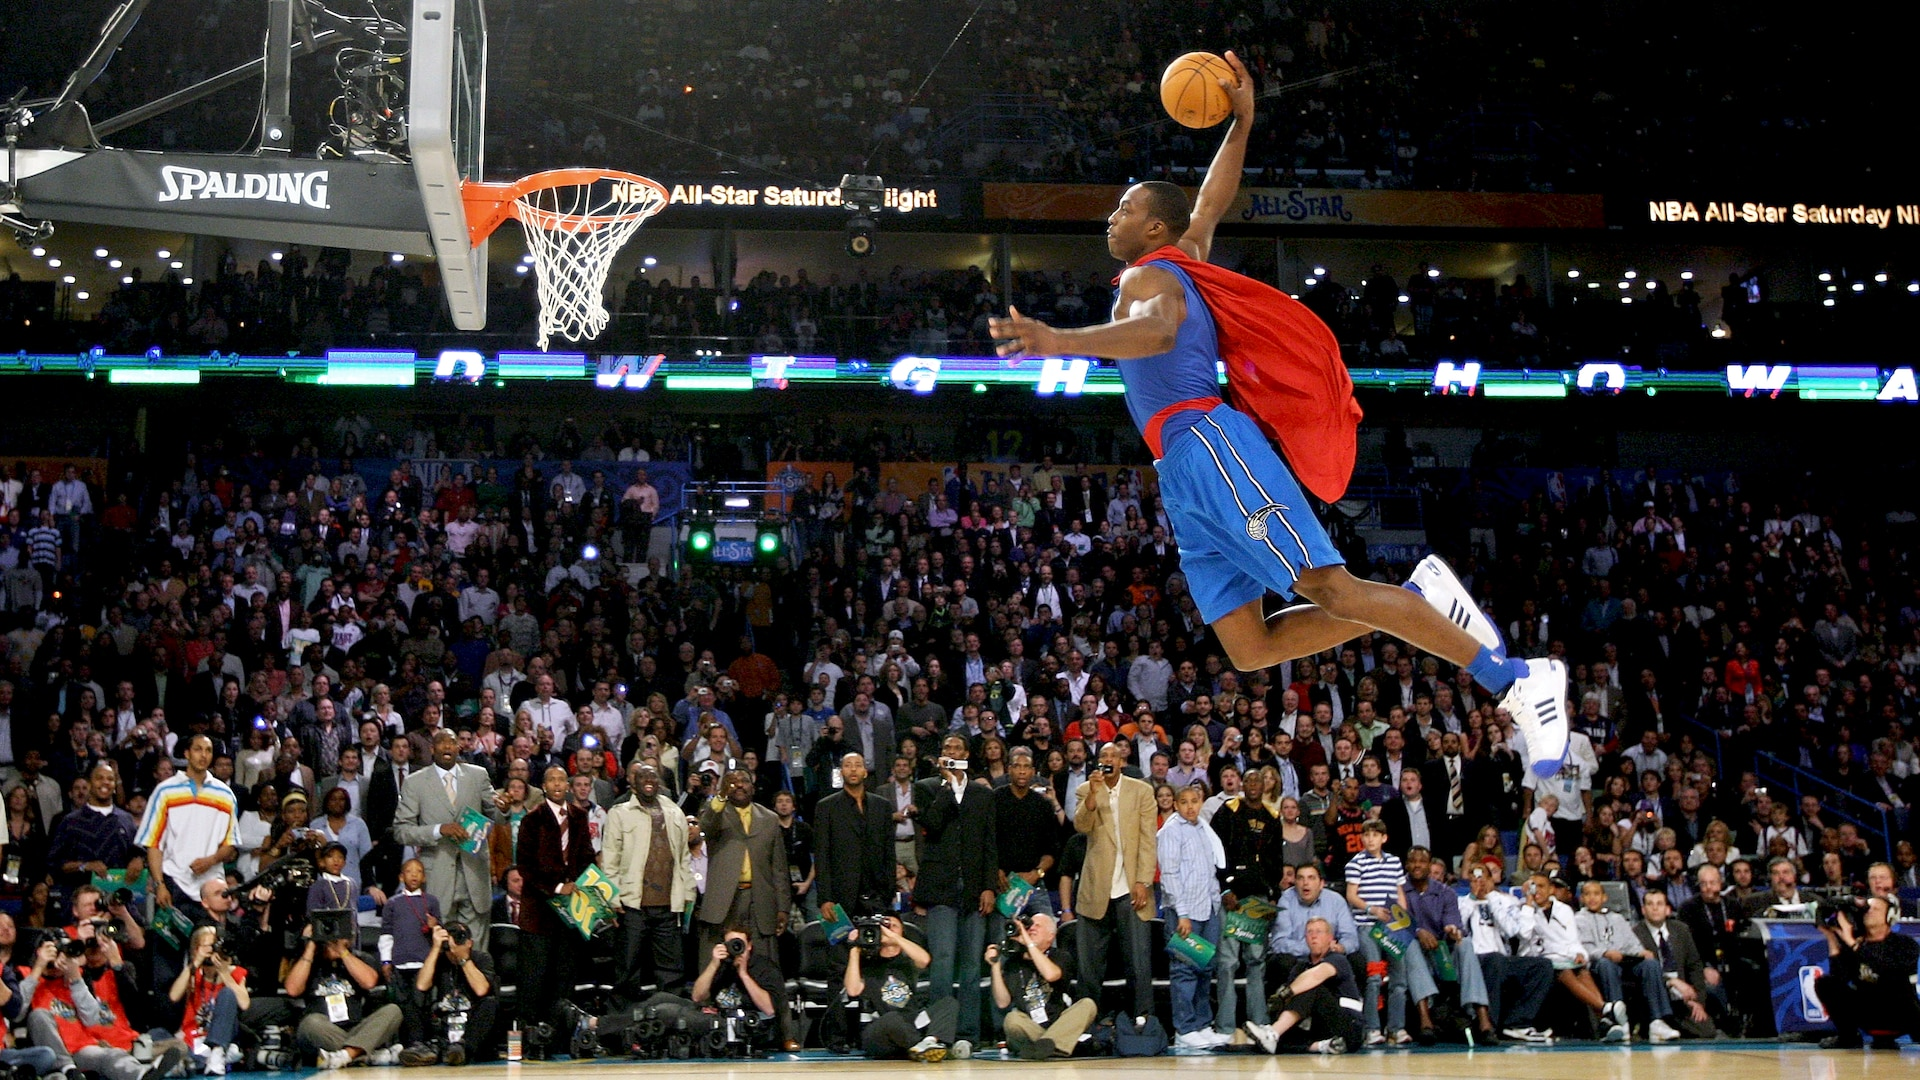 Former dunk champ Dwight Howard will participate in AT&T Slam Dunk